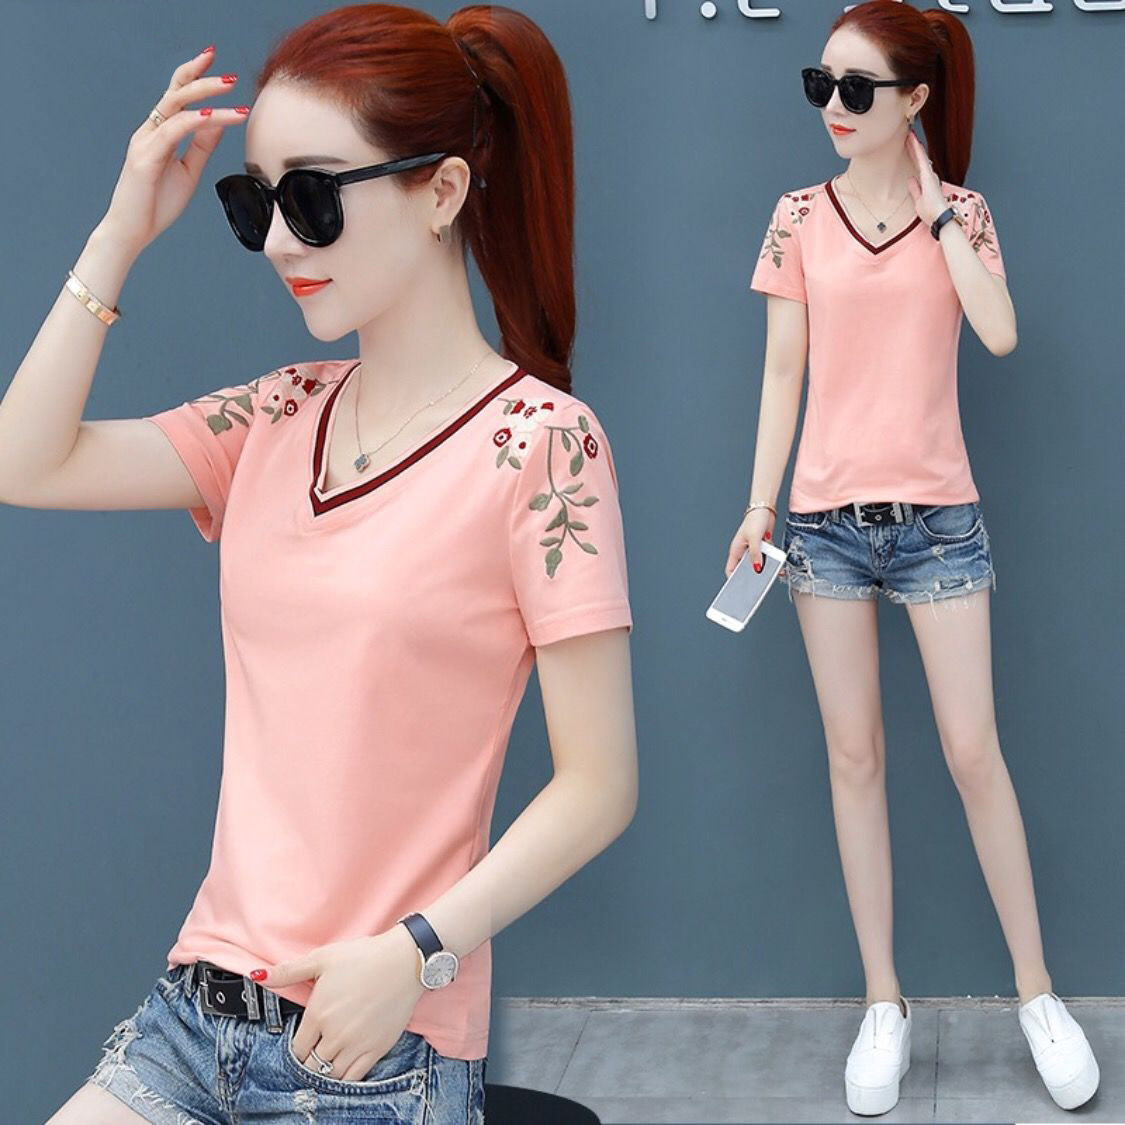 White T Shirt Women Elegant Ladies T Shirts With V Neck Embroidery Casual Tops Tee Shirt Femme